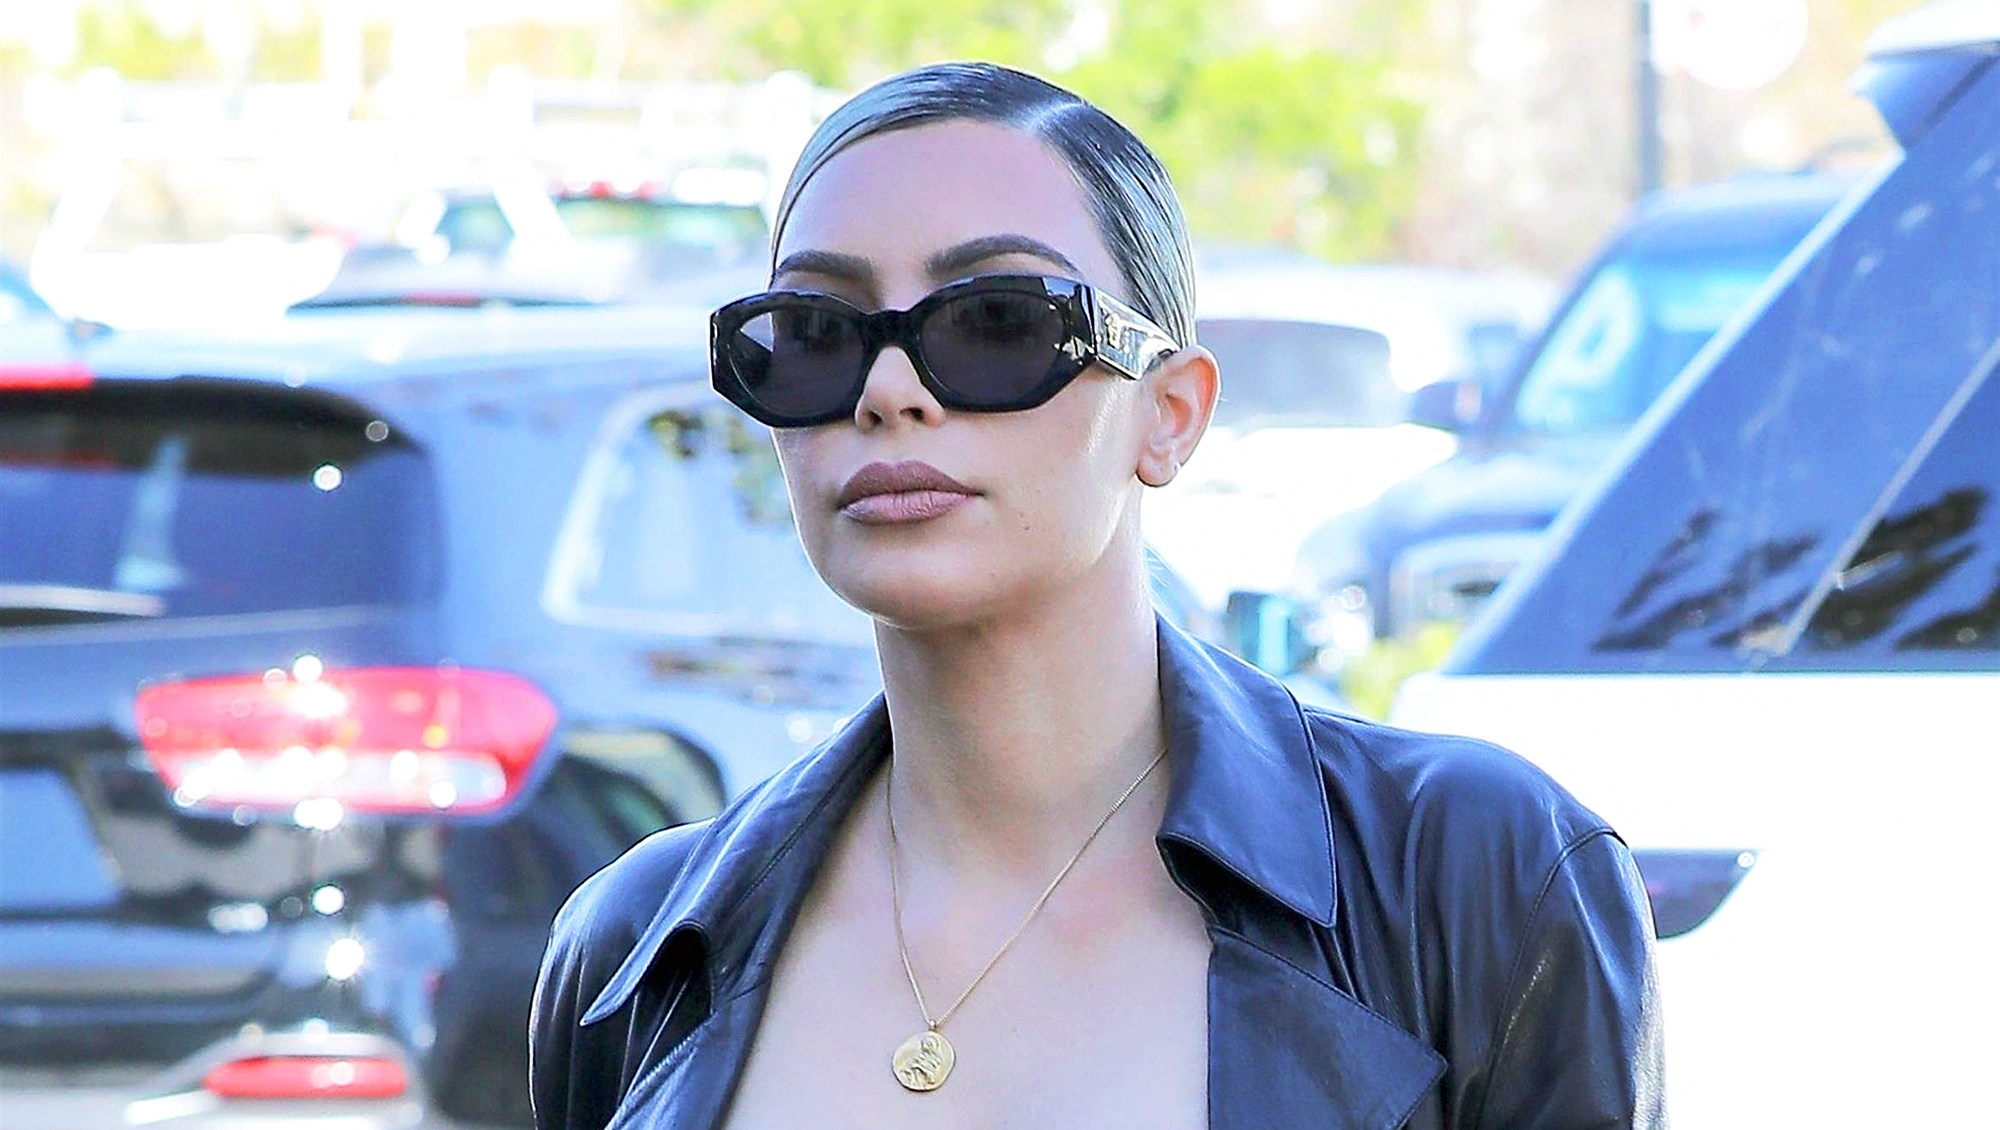 Kim Kardashian steps out for lunch while filming 'Keeping Up With The Kardashians' on February 8, 2018 in Los Angeles, California.